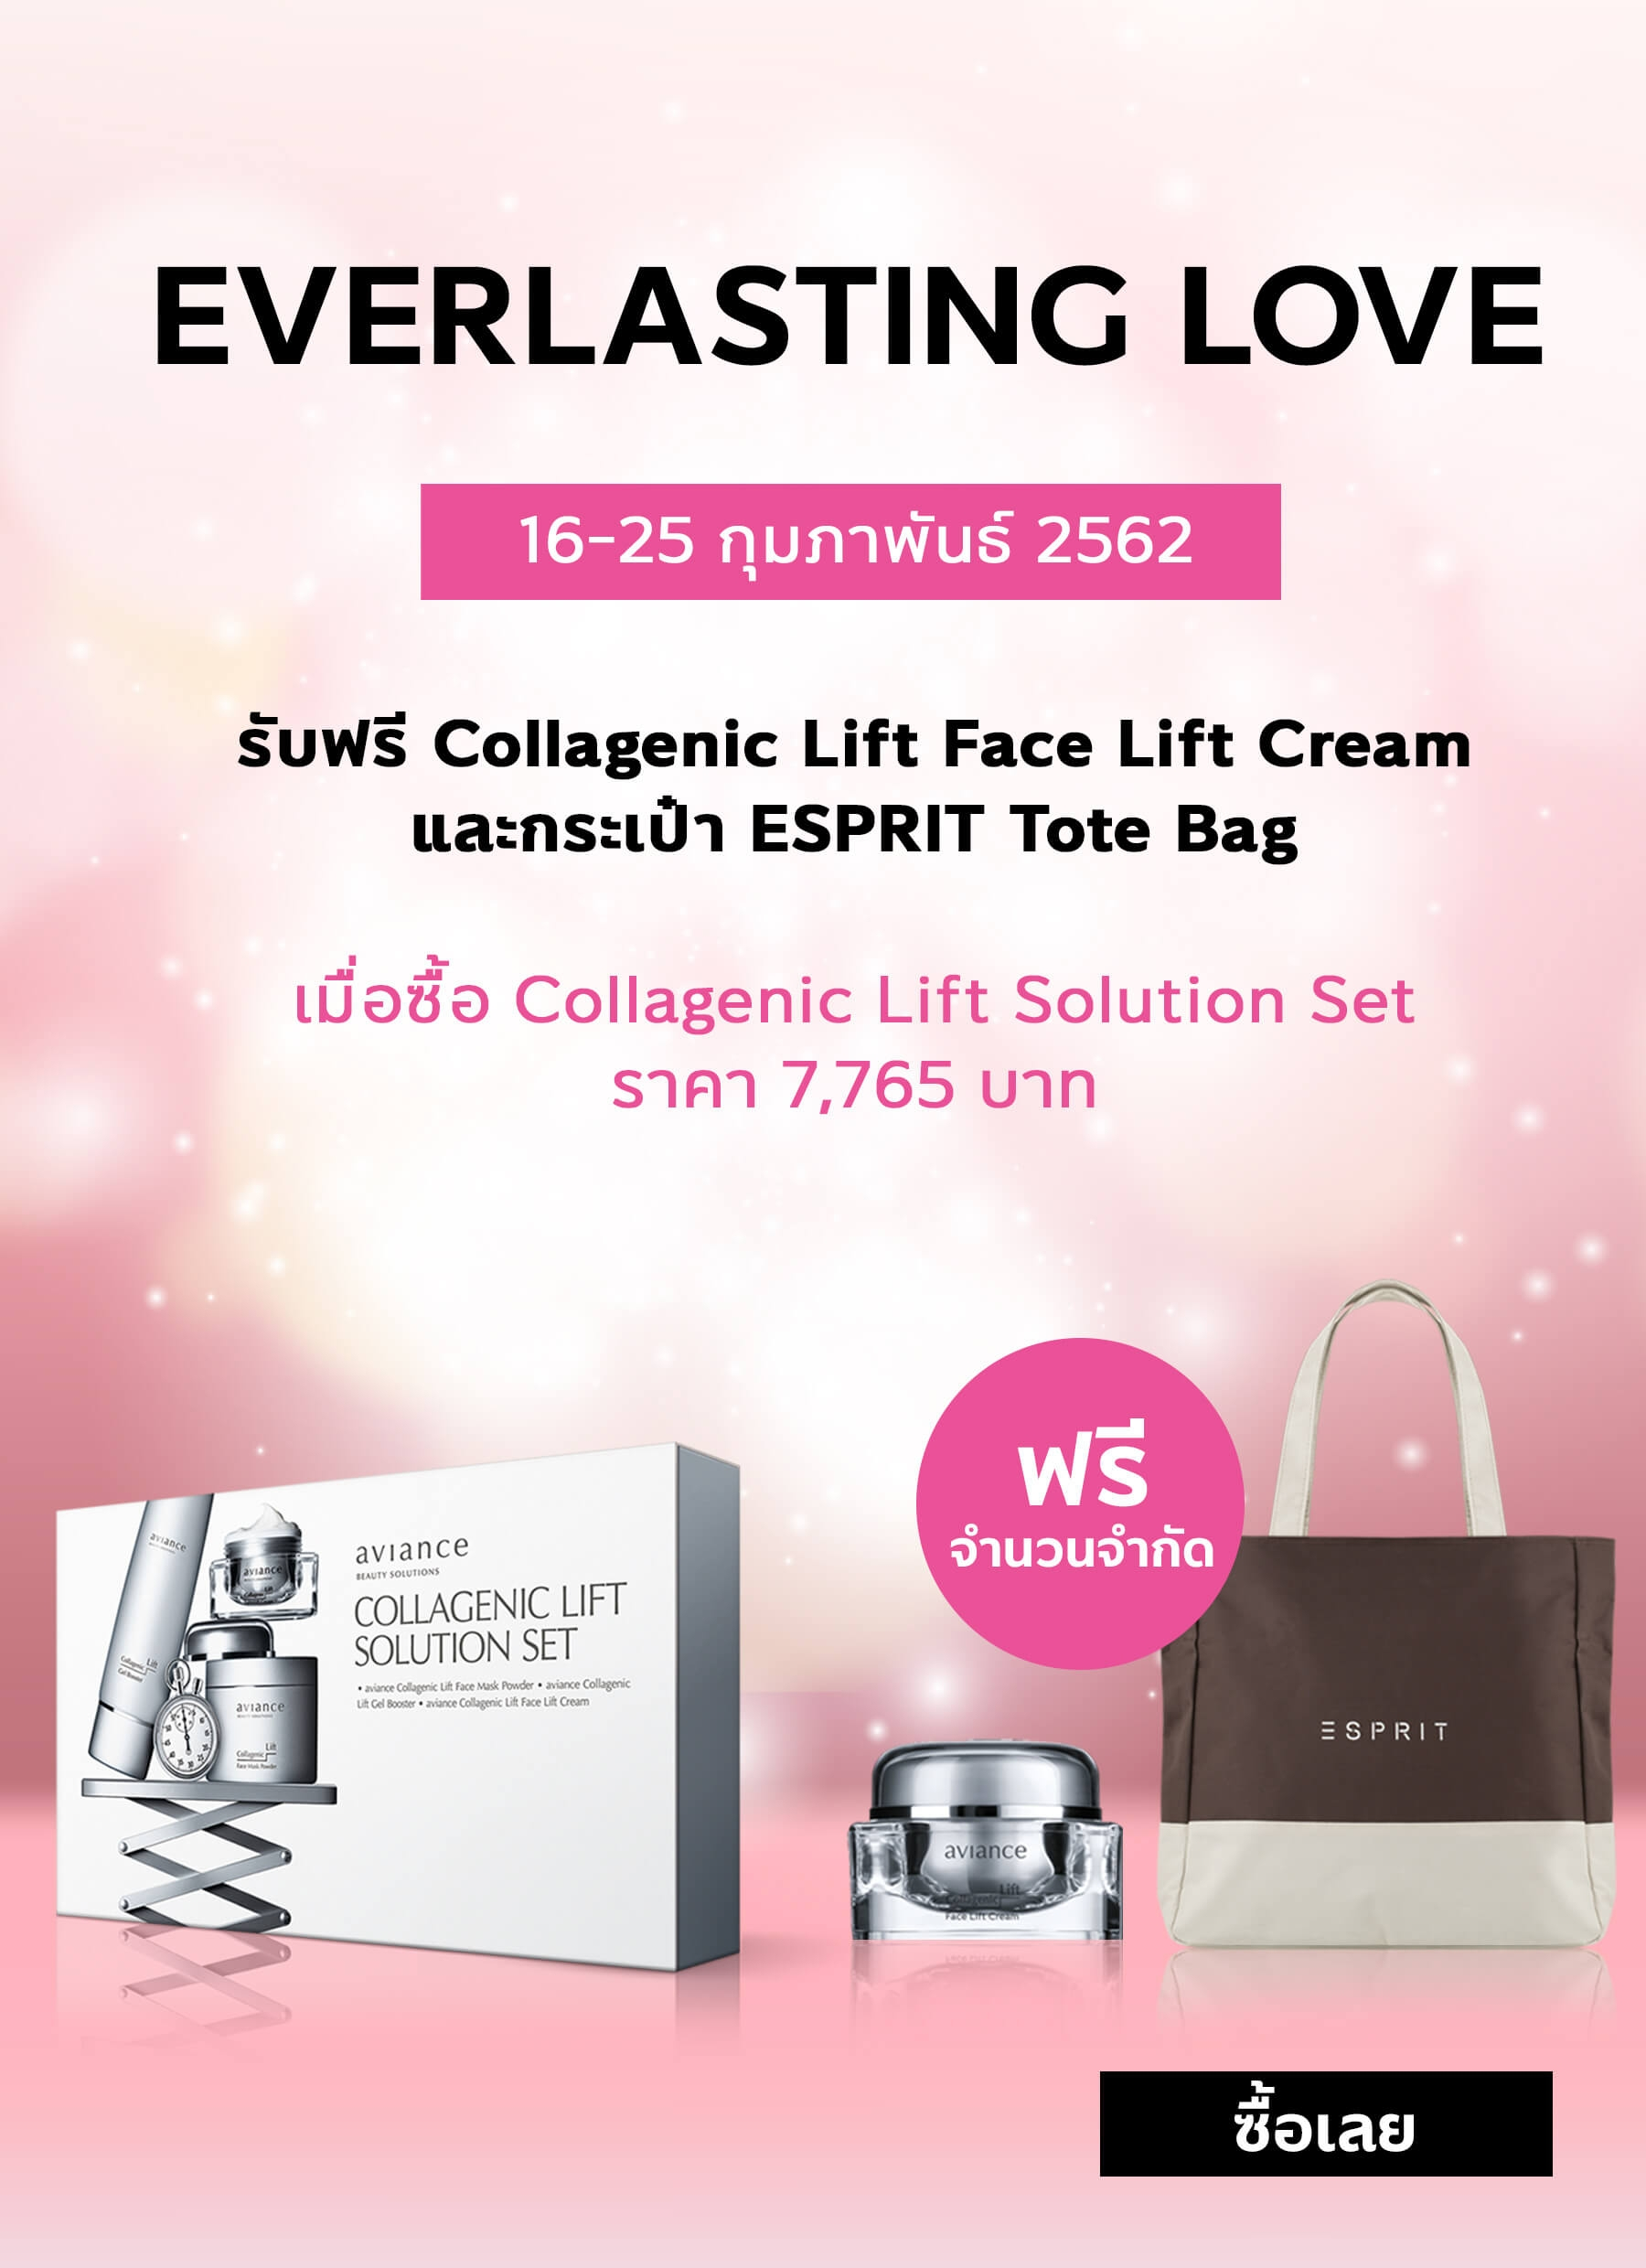 Collagenic Lift Solution Set get Free Collagenic Lift Face Lift Cream & Esprit Tote Bag